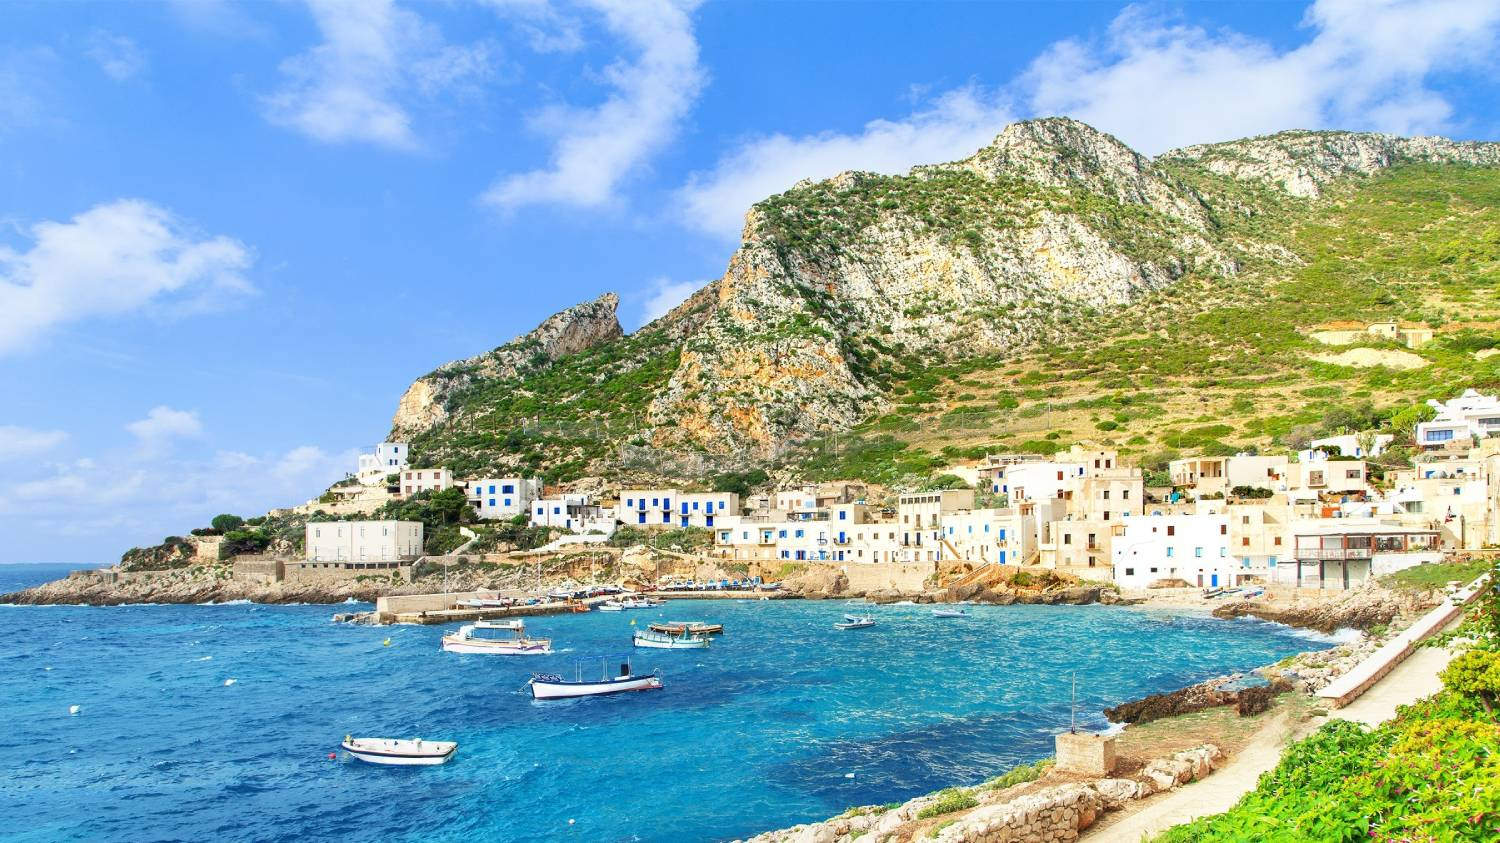 Sicily - The Best Places To Visit In Italy